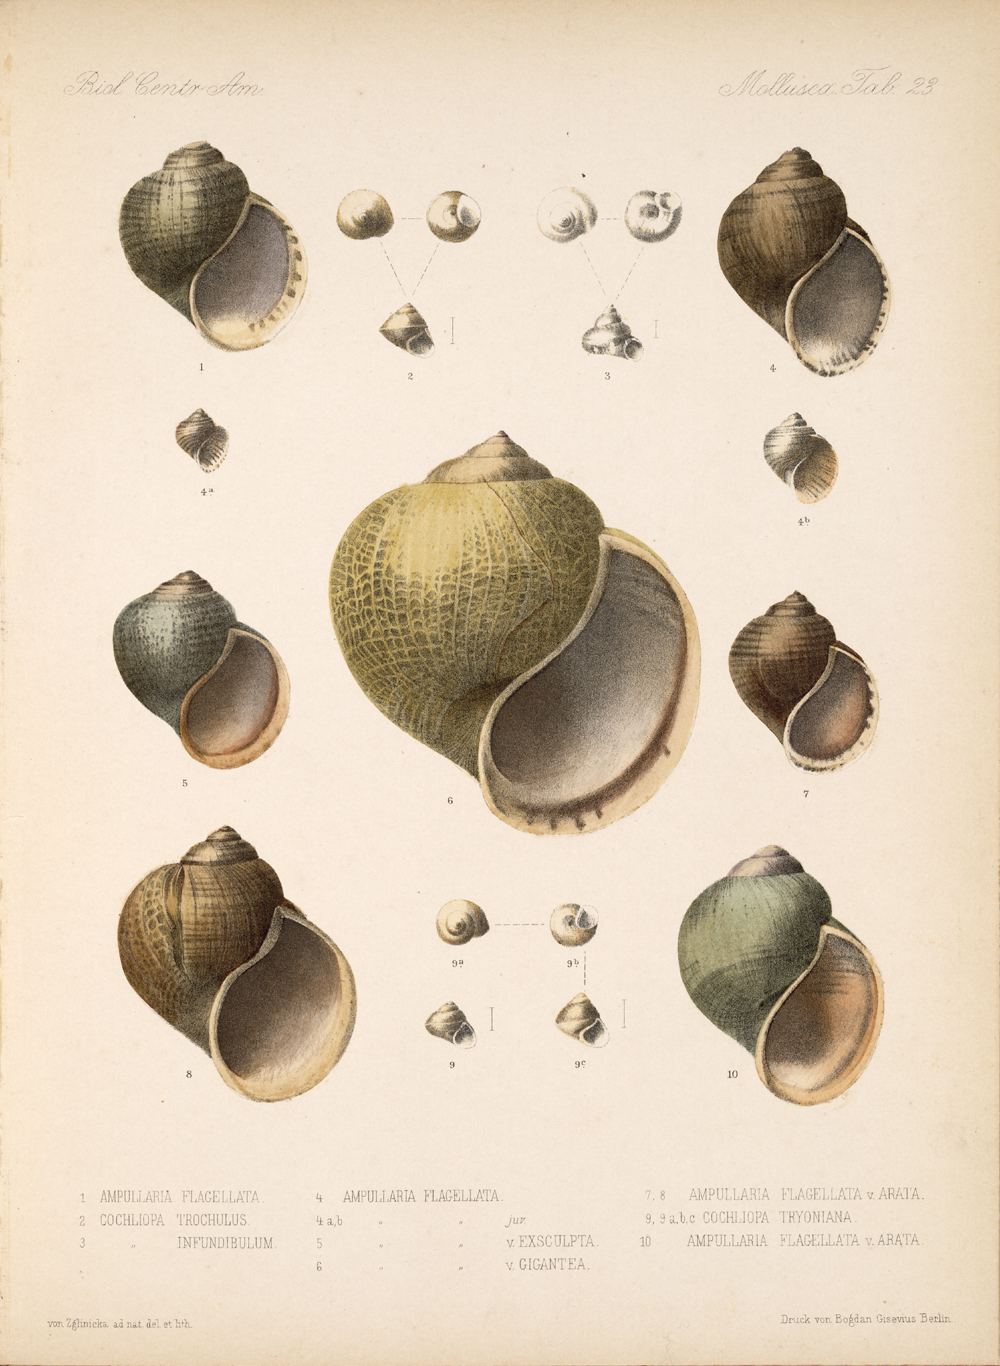 Shells and Mollusks,  Image number:bca_06_00_00_755